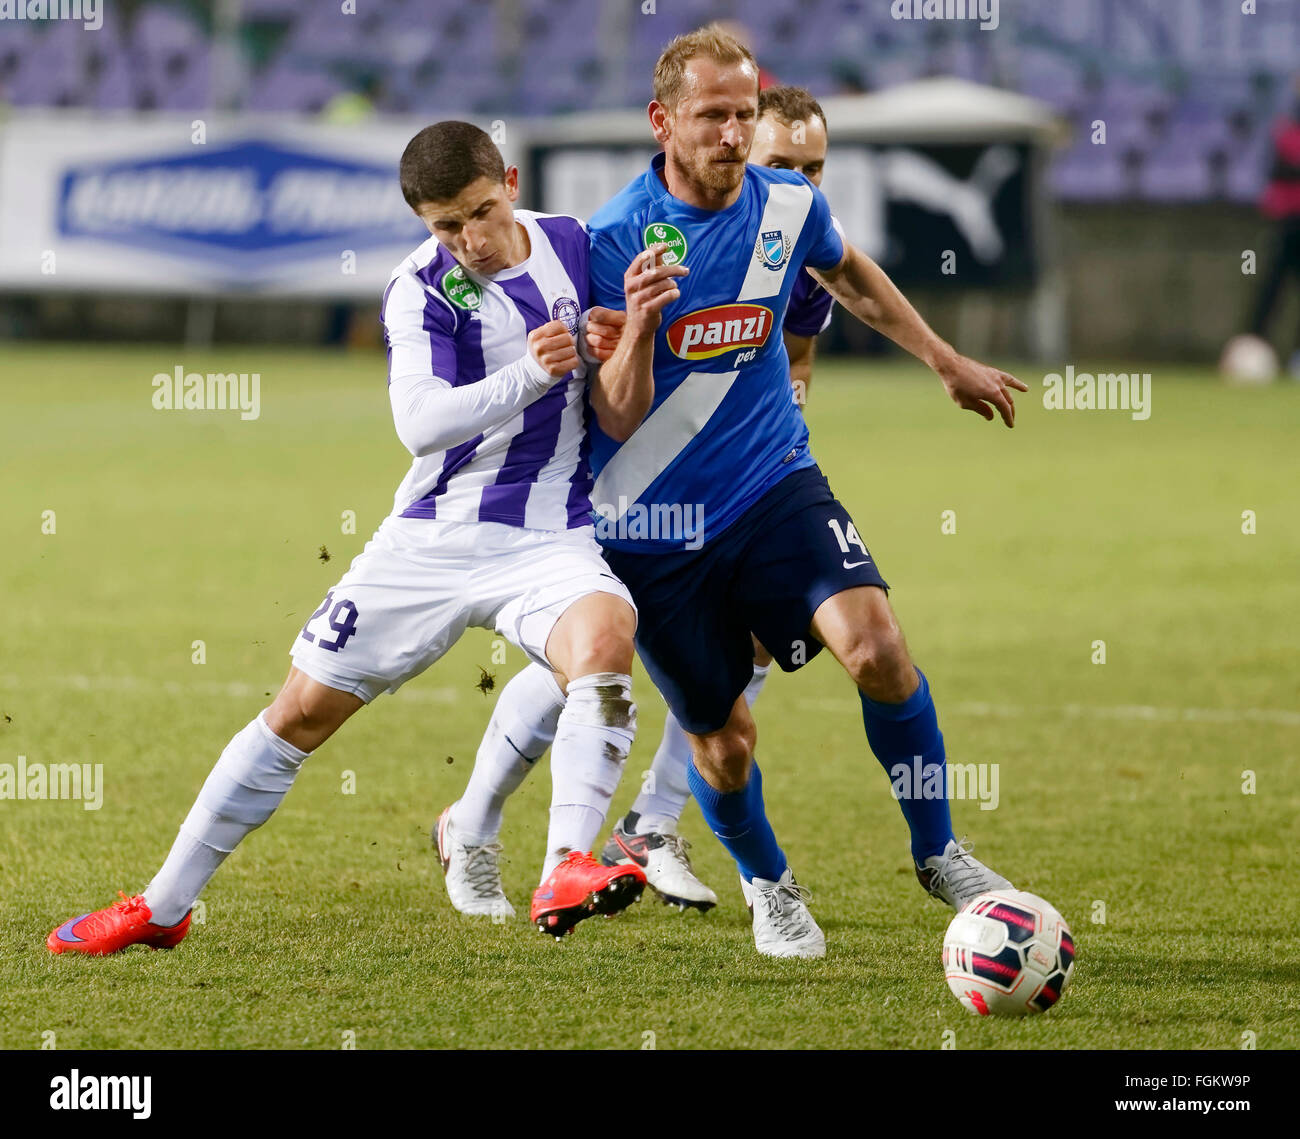 Budapest, Hungary. 20th February,  2016. Duel between Enis Bardhi of Ujpest (l) and Sandor Torghelle of MTK during - Stock Image